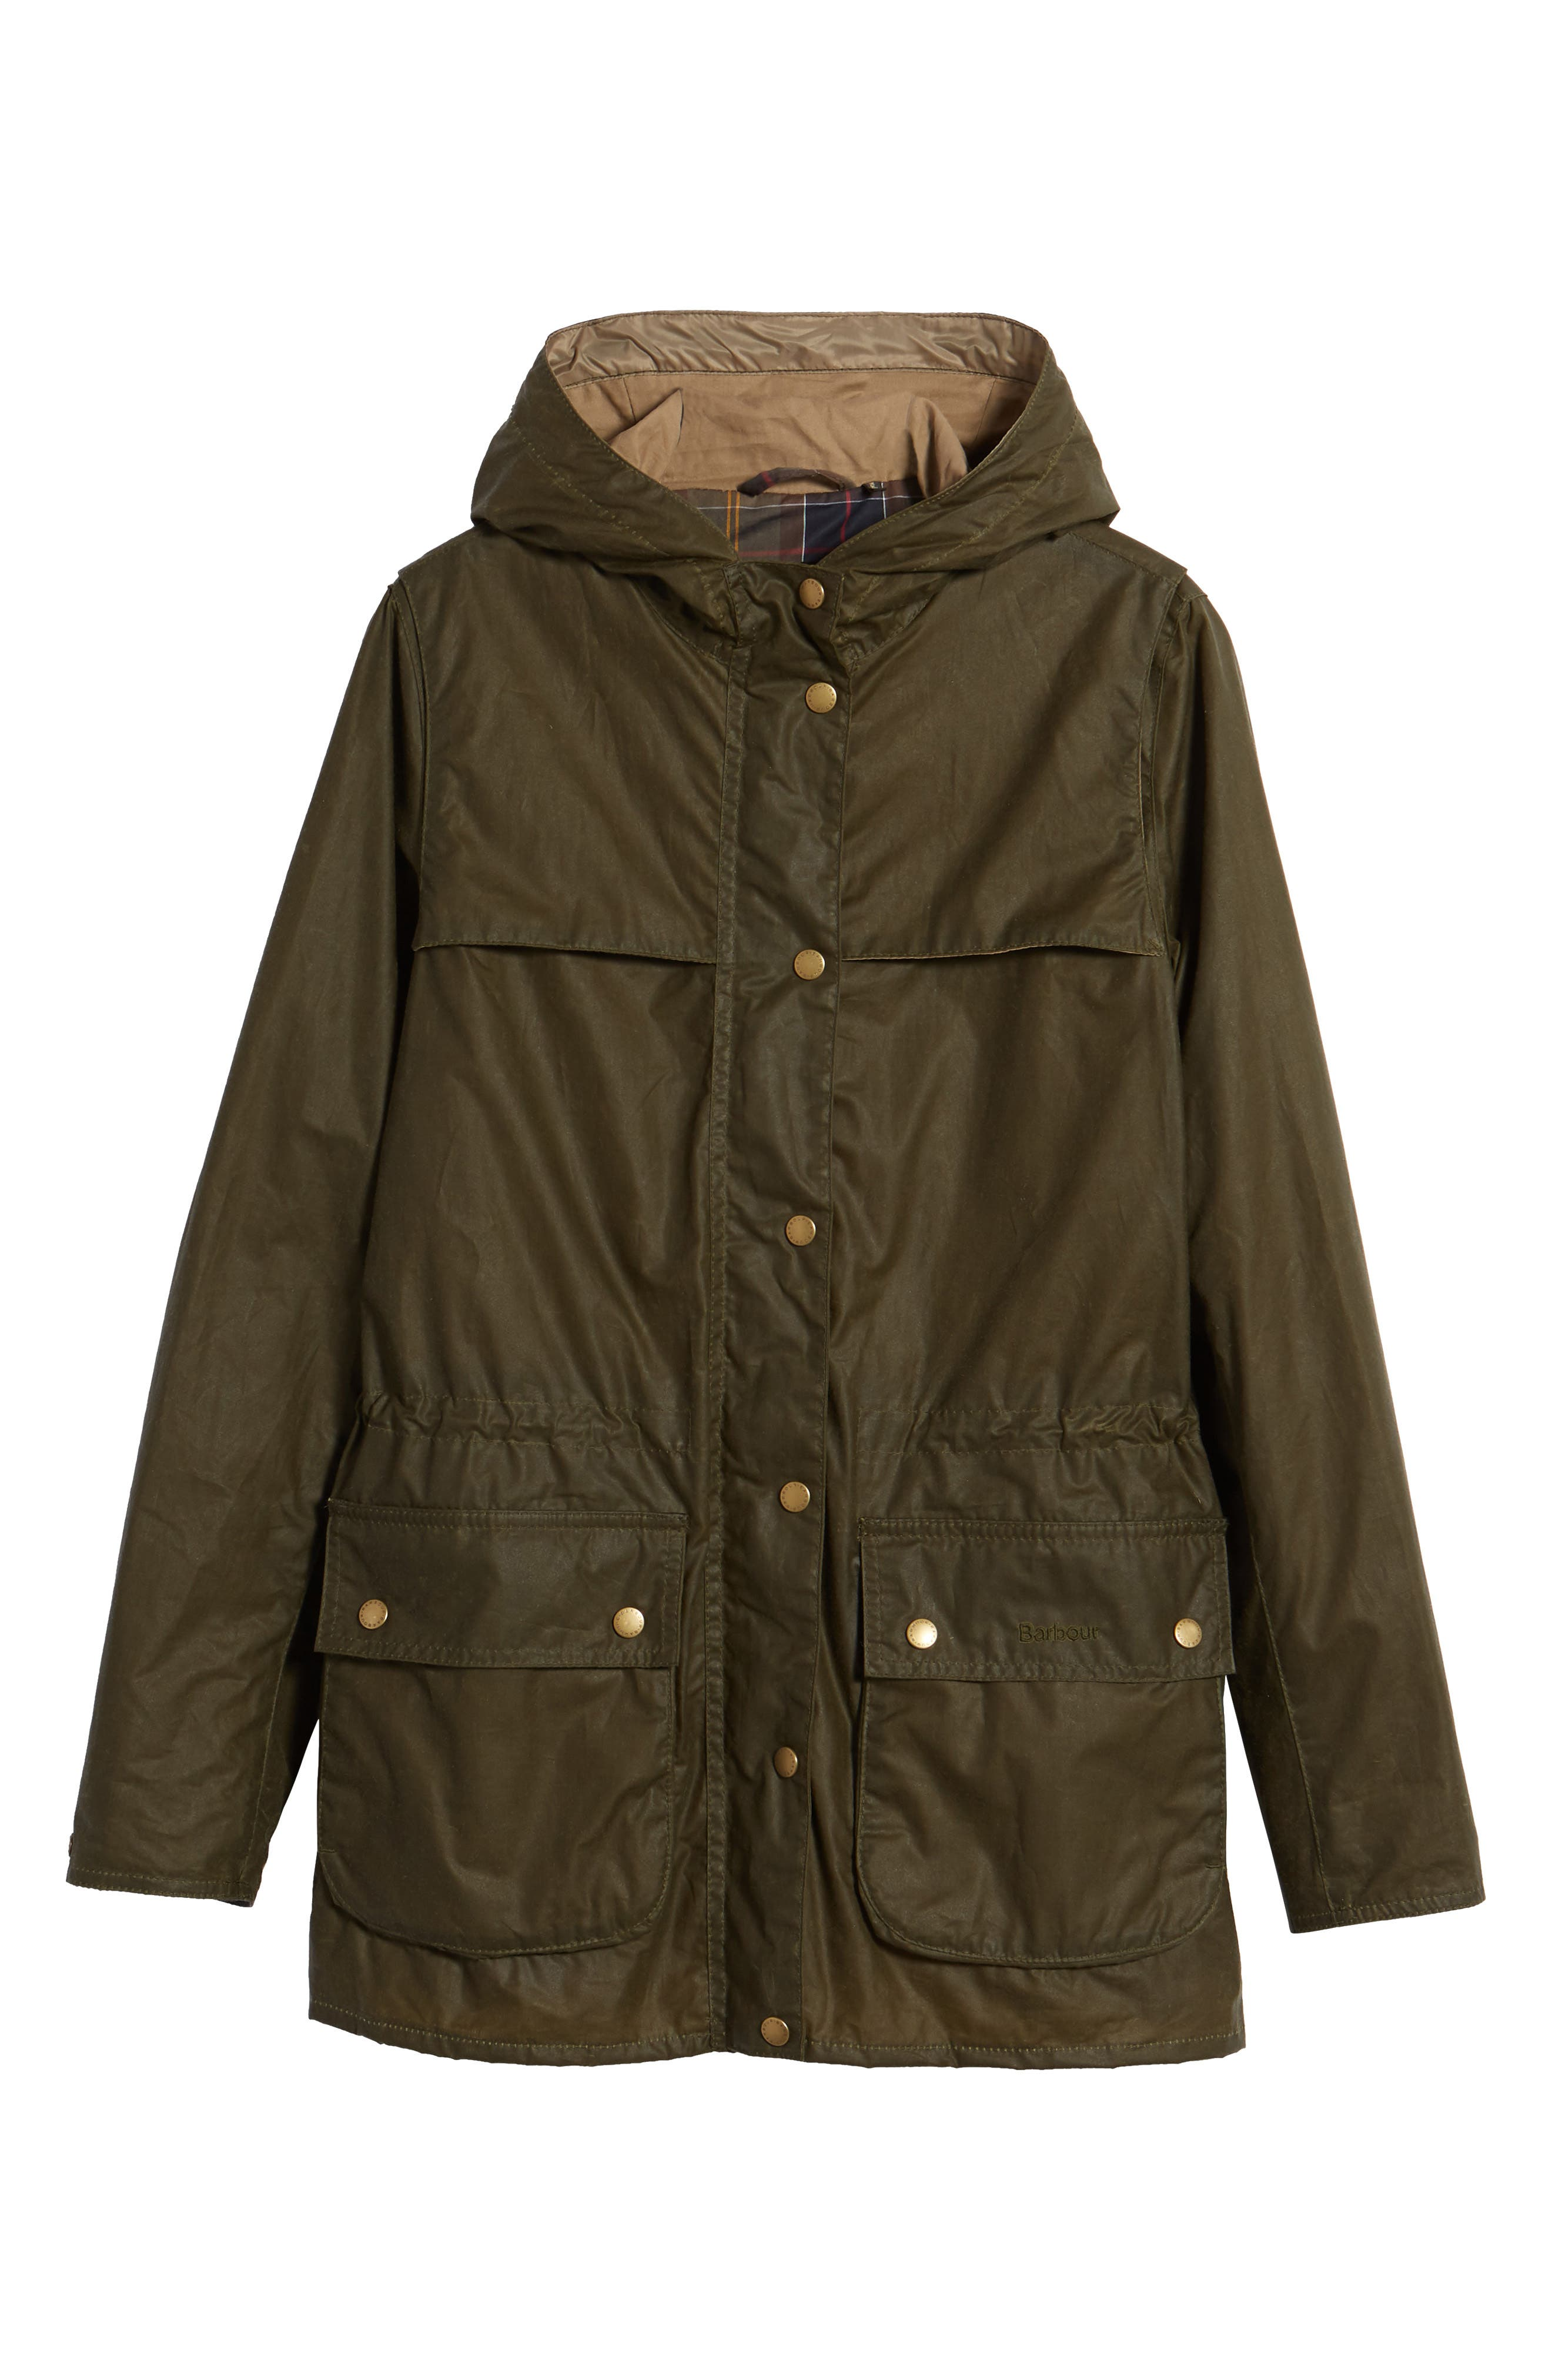 Durham Lightweight Wax Cotton Jacket,                             Alternate thumbnail 8, color,                             Archive Olive